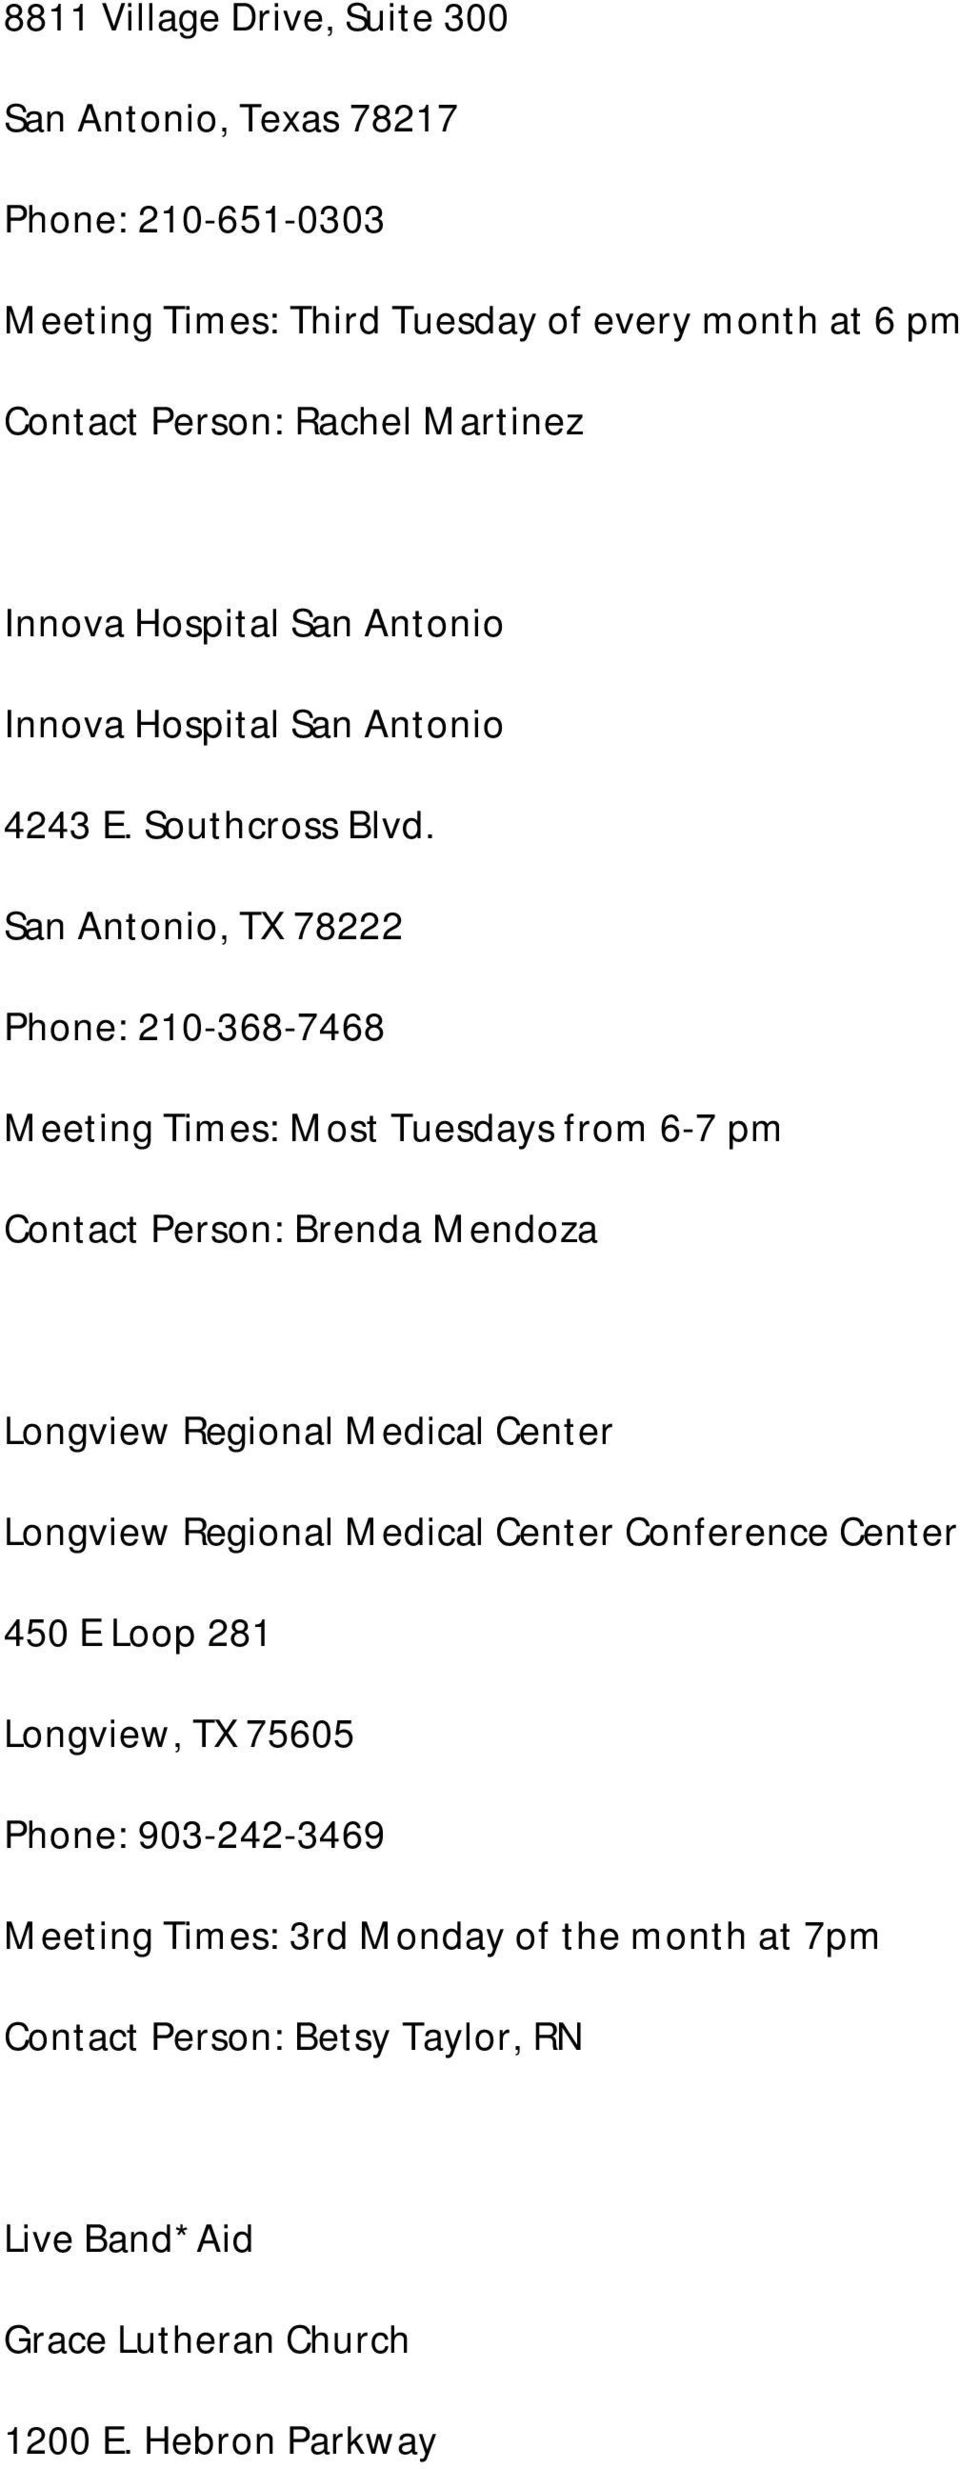 San Antonio, TX 78222 Phone: 210-368-7468 Meeting Times: Most Tuesdays from 6-7 pm Contact Person: Brenda Mendoza Longview Regional Medical Center Longview